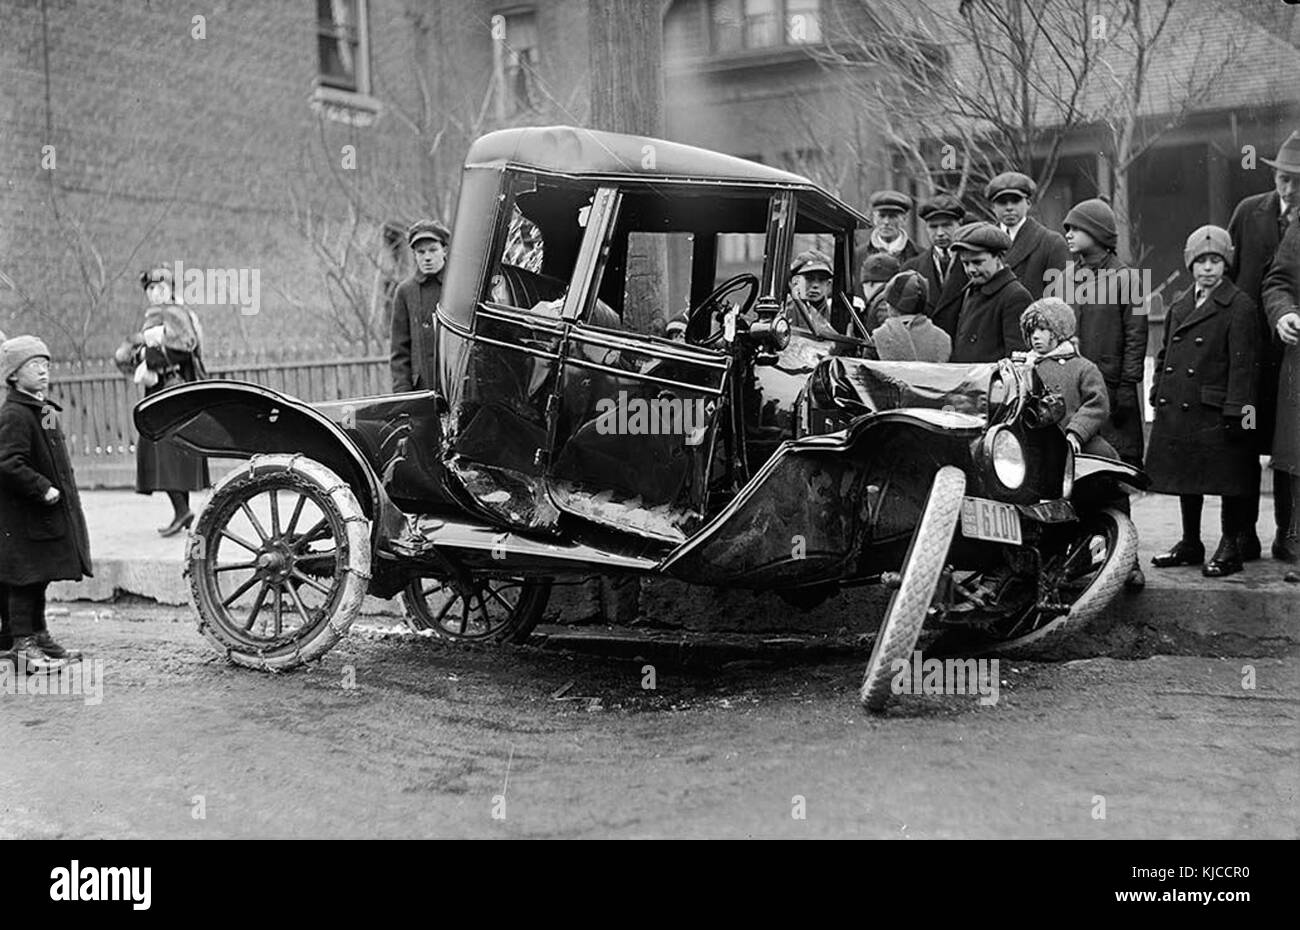 Auto accident on Bloor Street West in 1918 - Stock Image